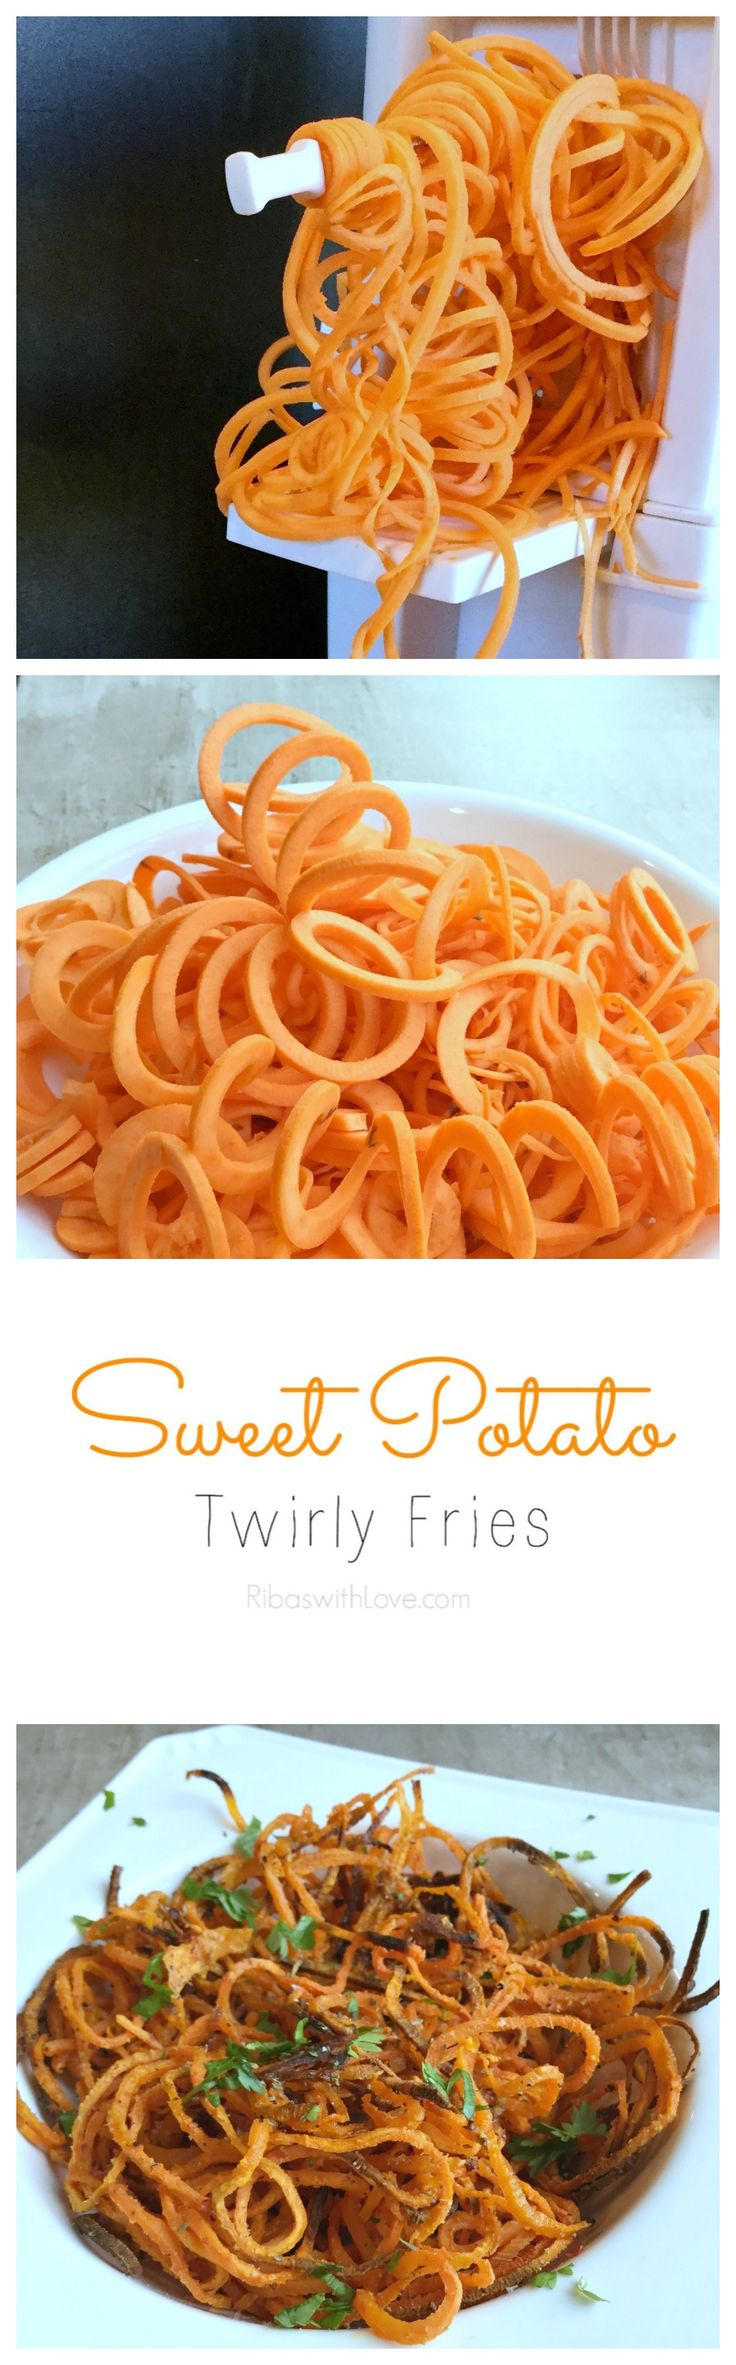 This baked sweet potato twirly fries is a delightful recipe to enjoy all year round.  Serve it alongside your favorite burger or as a yummy side dish to any meal.